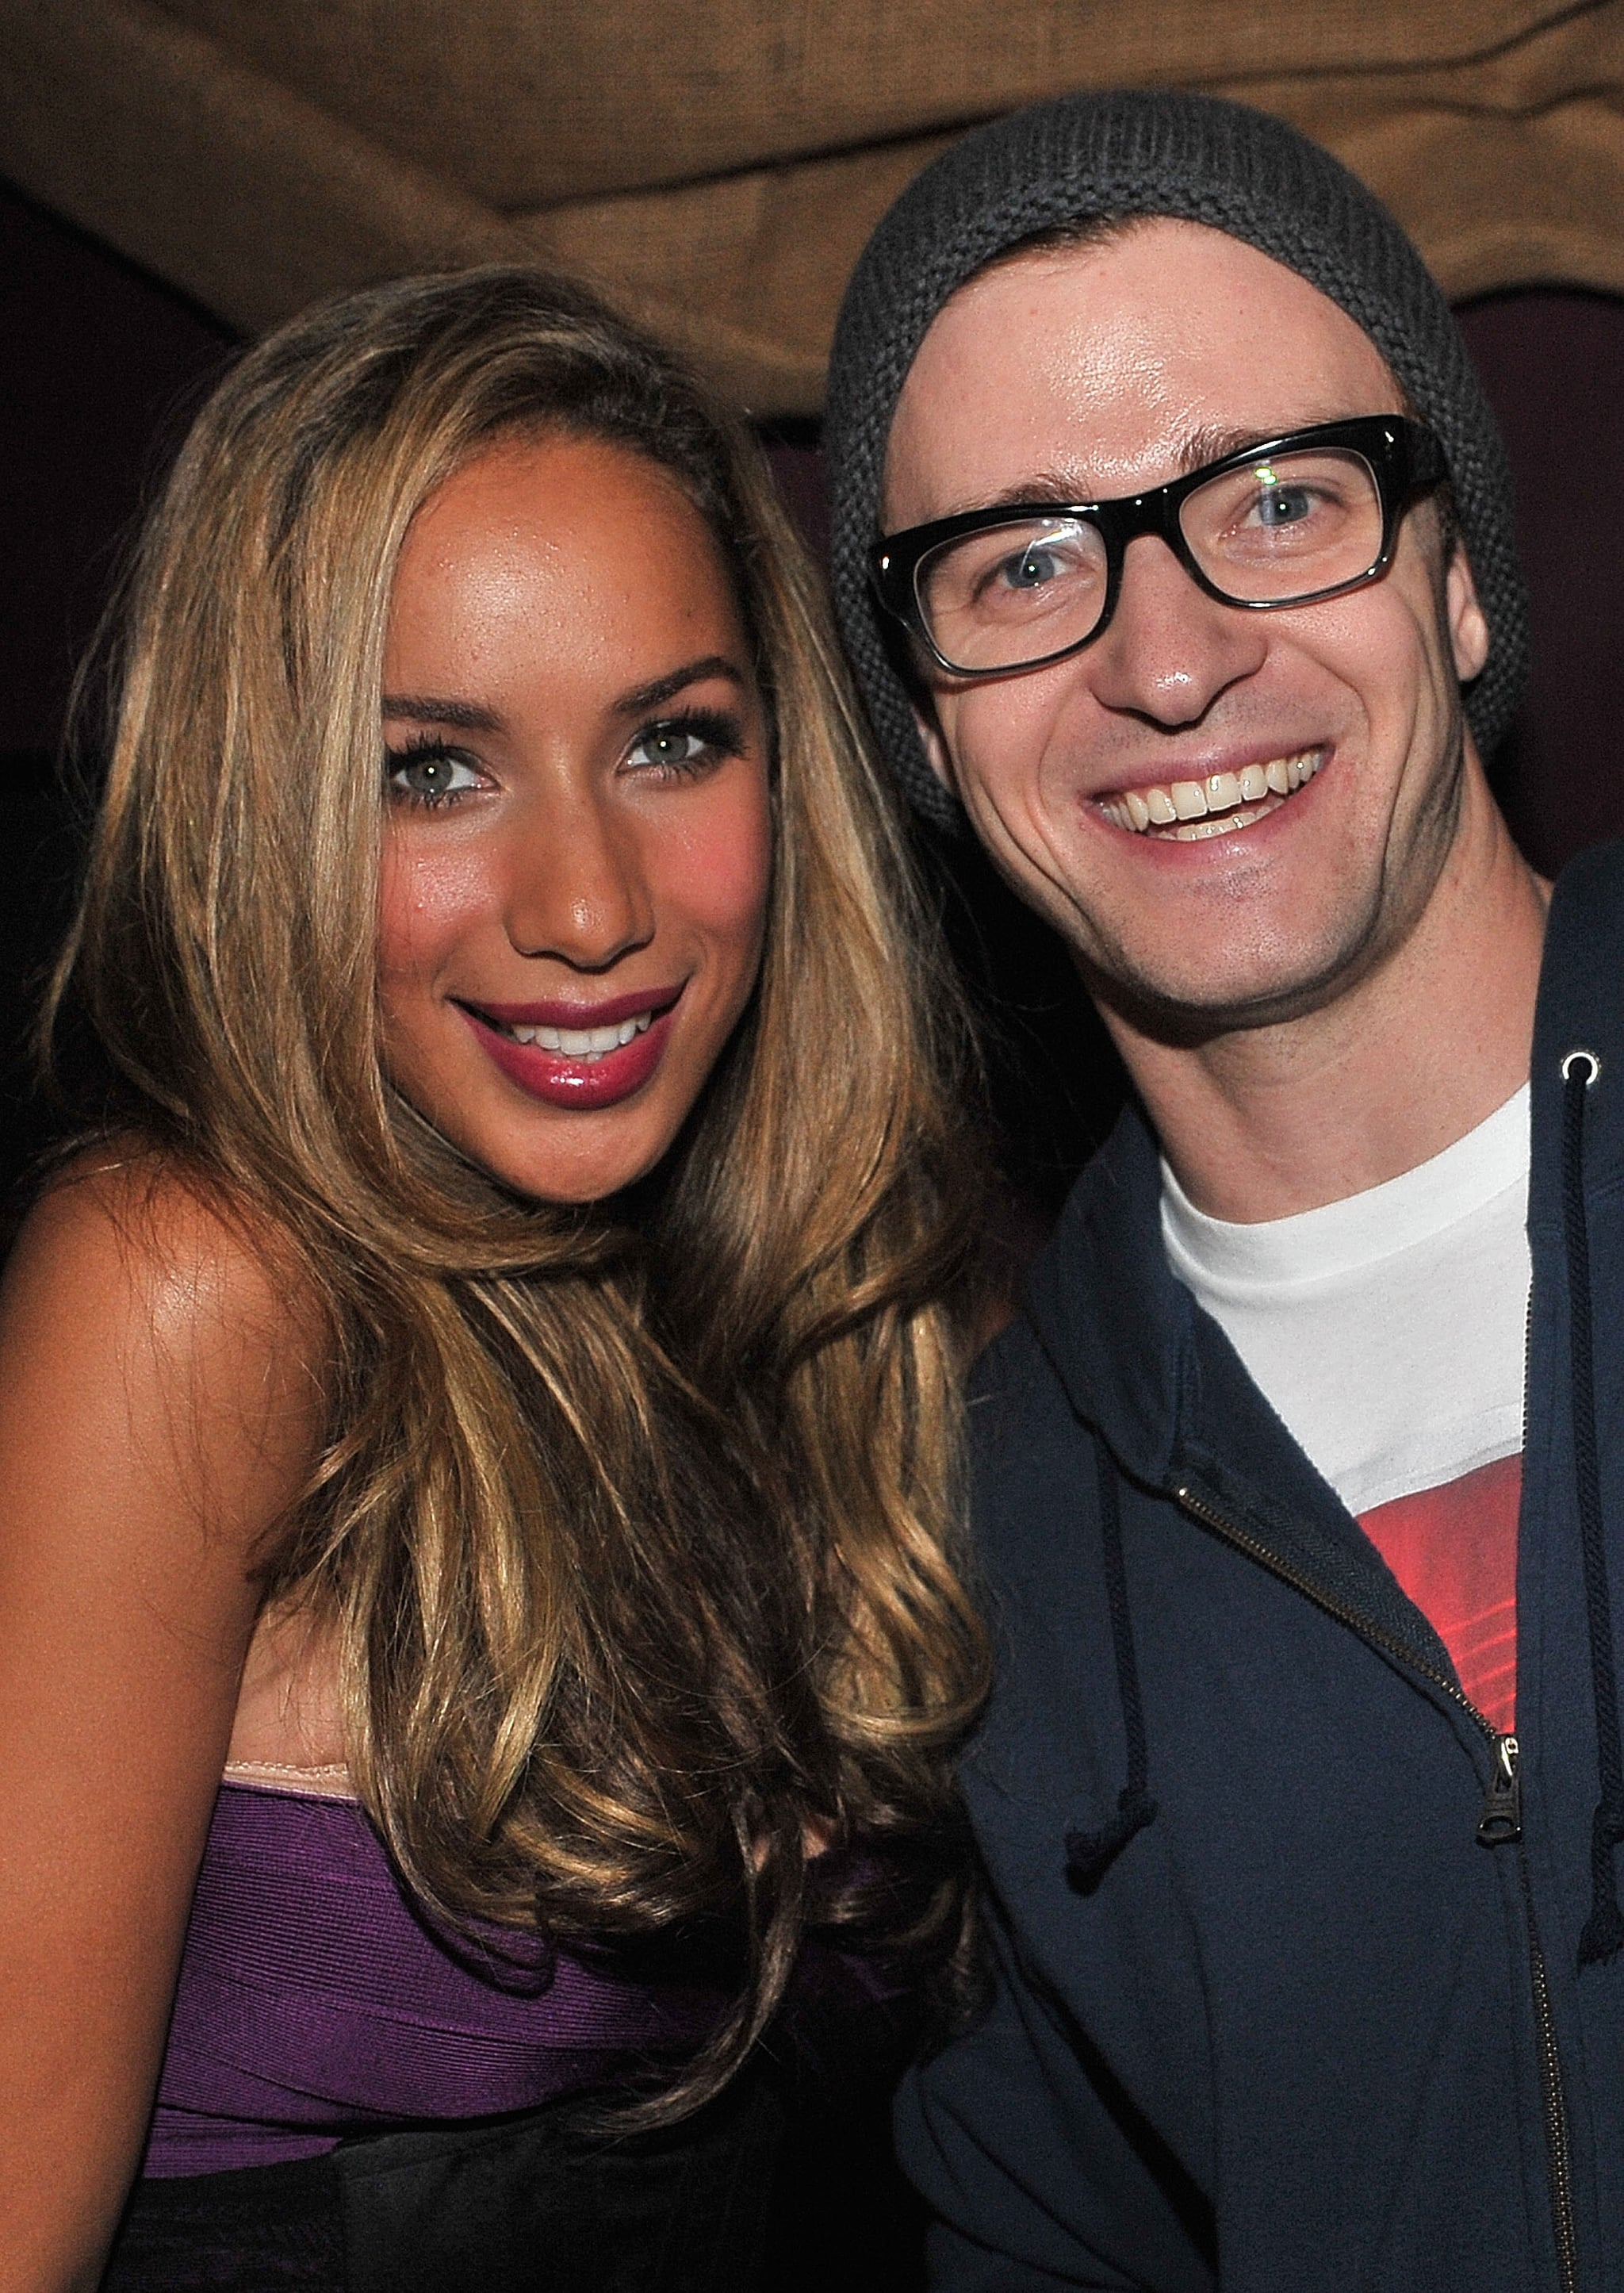 Looking hot in glasses and a beanie, Justin posed with Leona Lewis at her album release party in 2009.